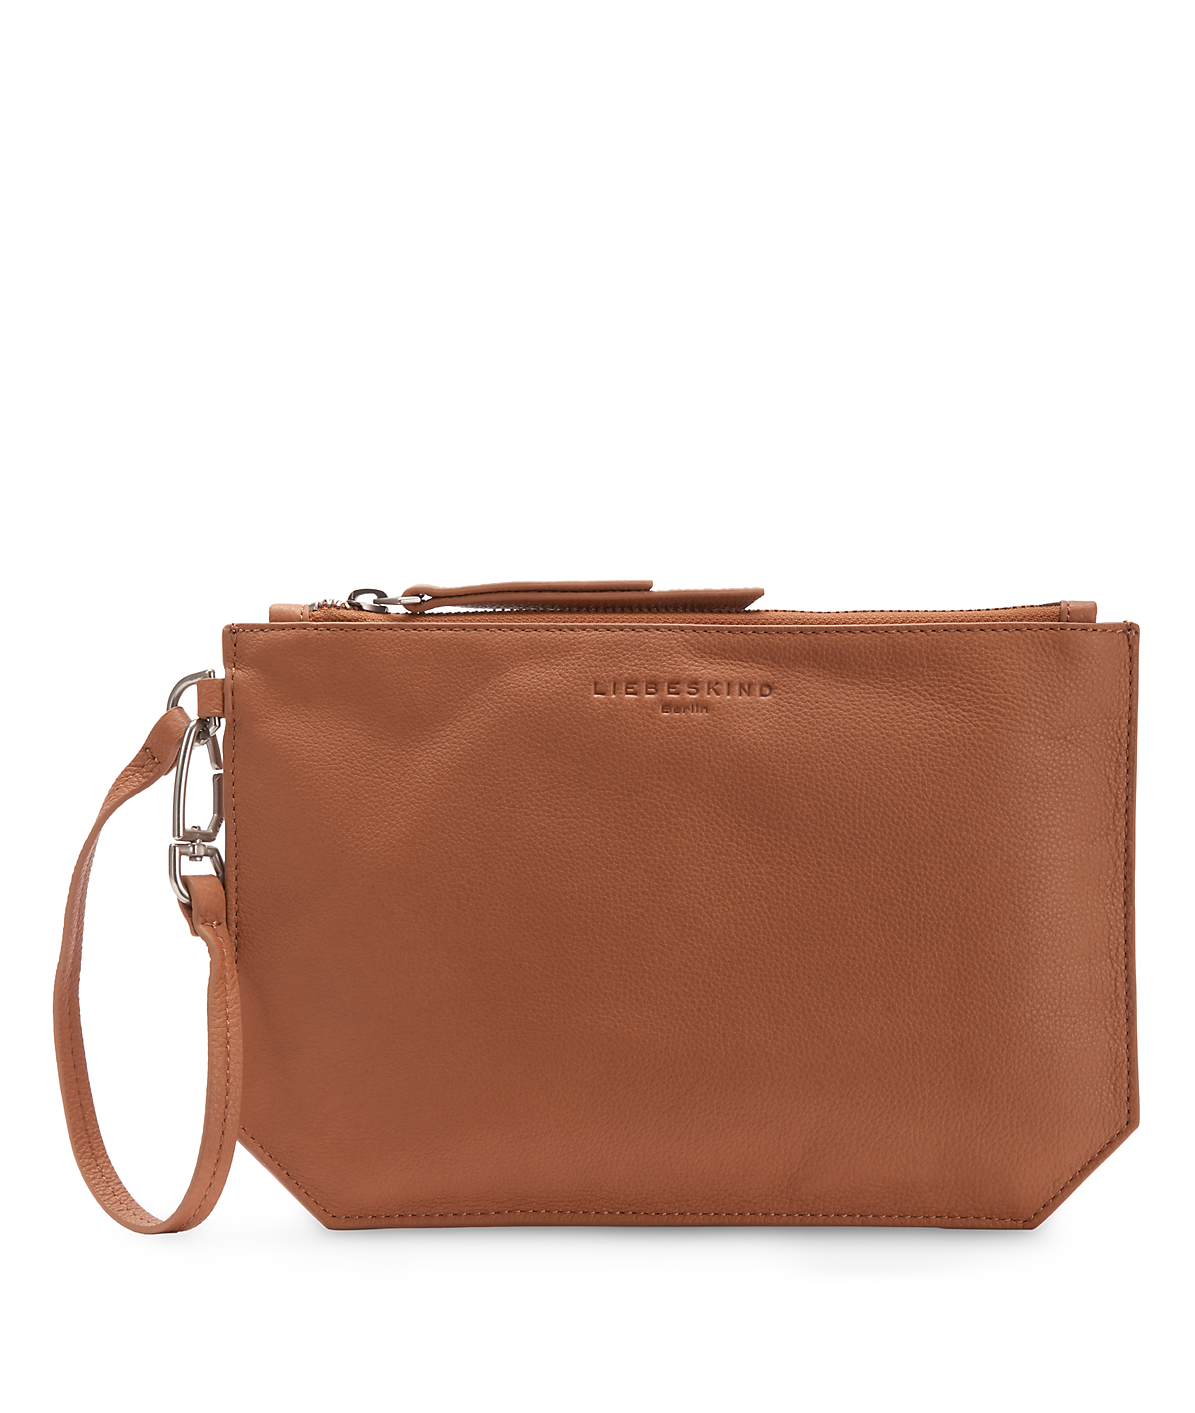 InsideB pouch from liebeskind